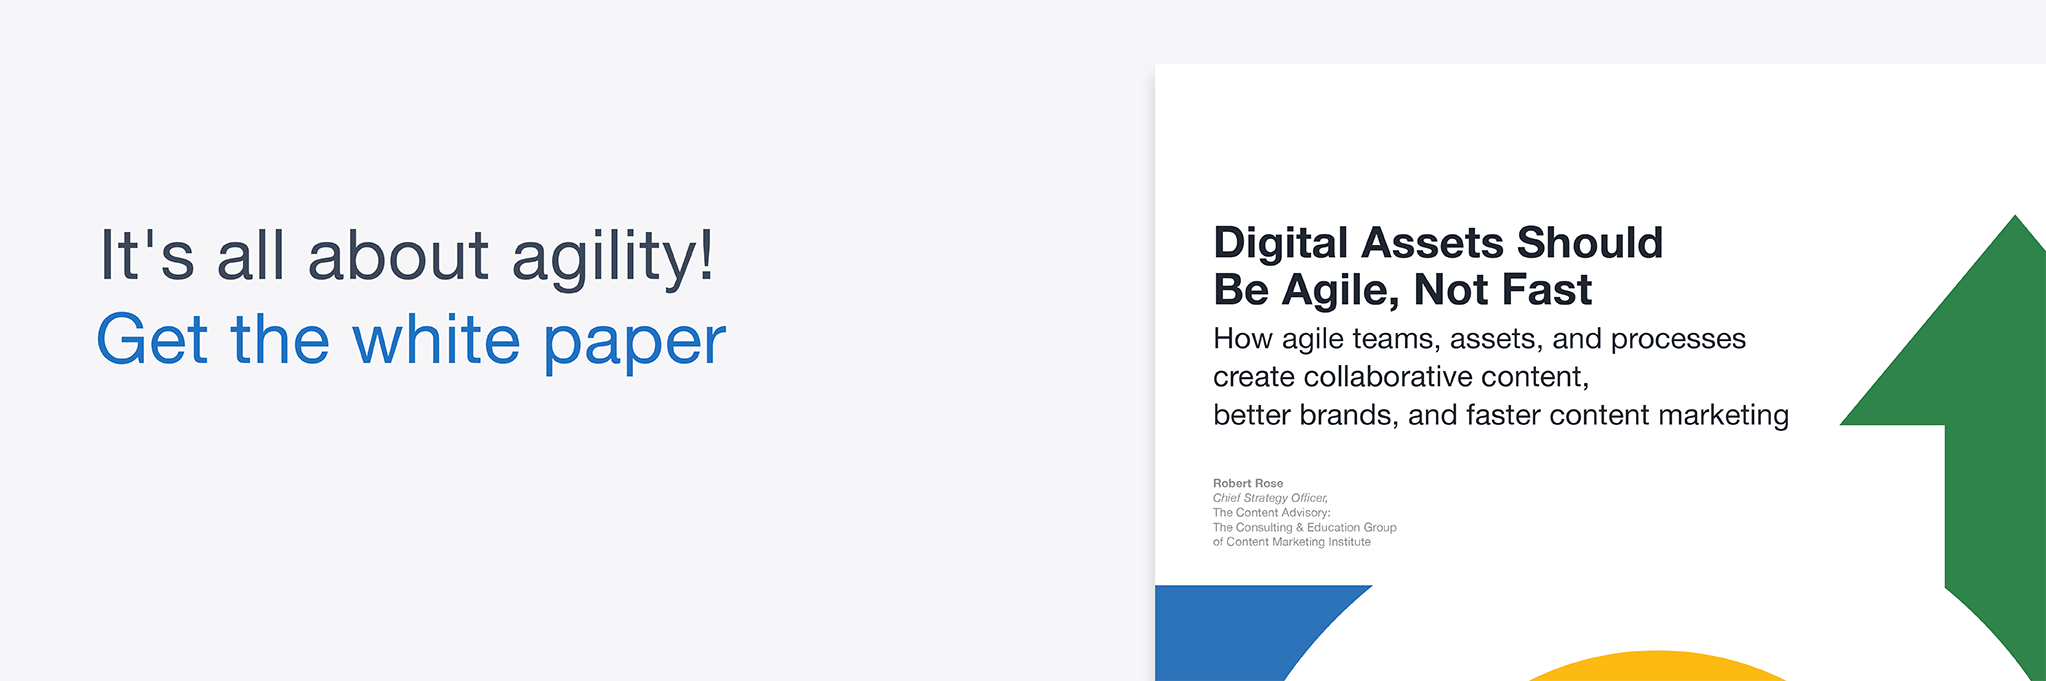 Digital Asset Should Be Agile Not Fast footer banner with white paper cover preview.